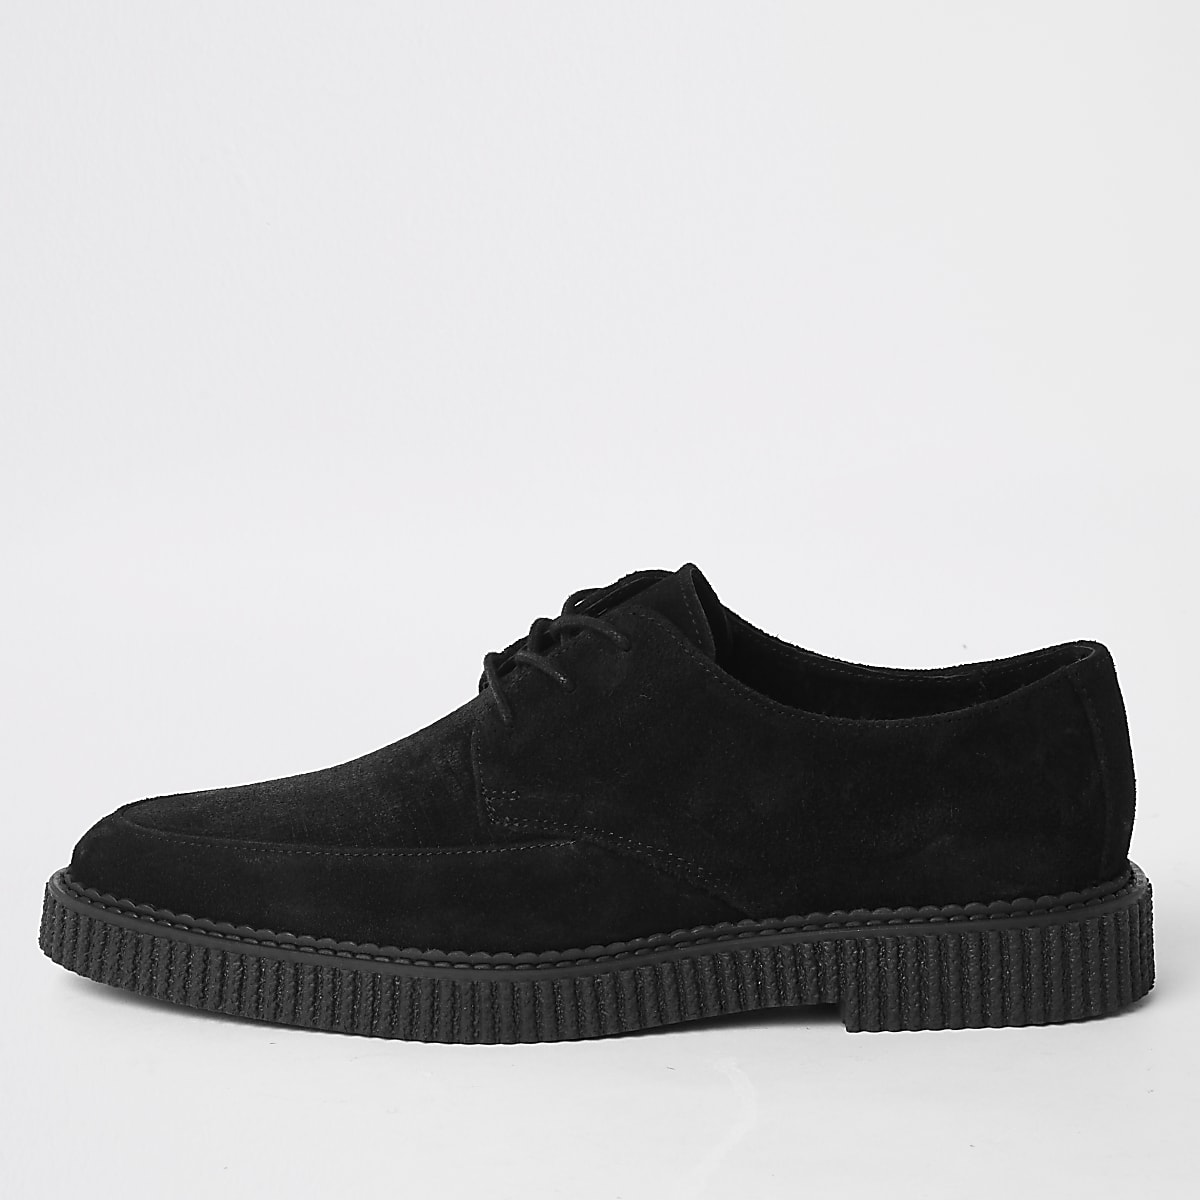 Black suede creeper shoes